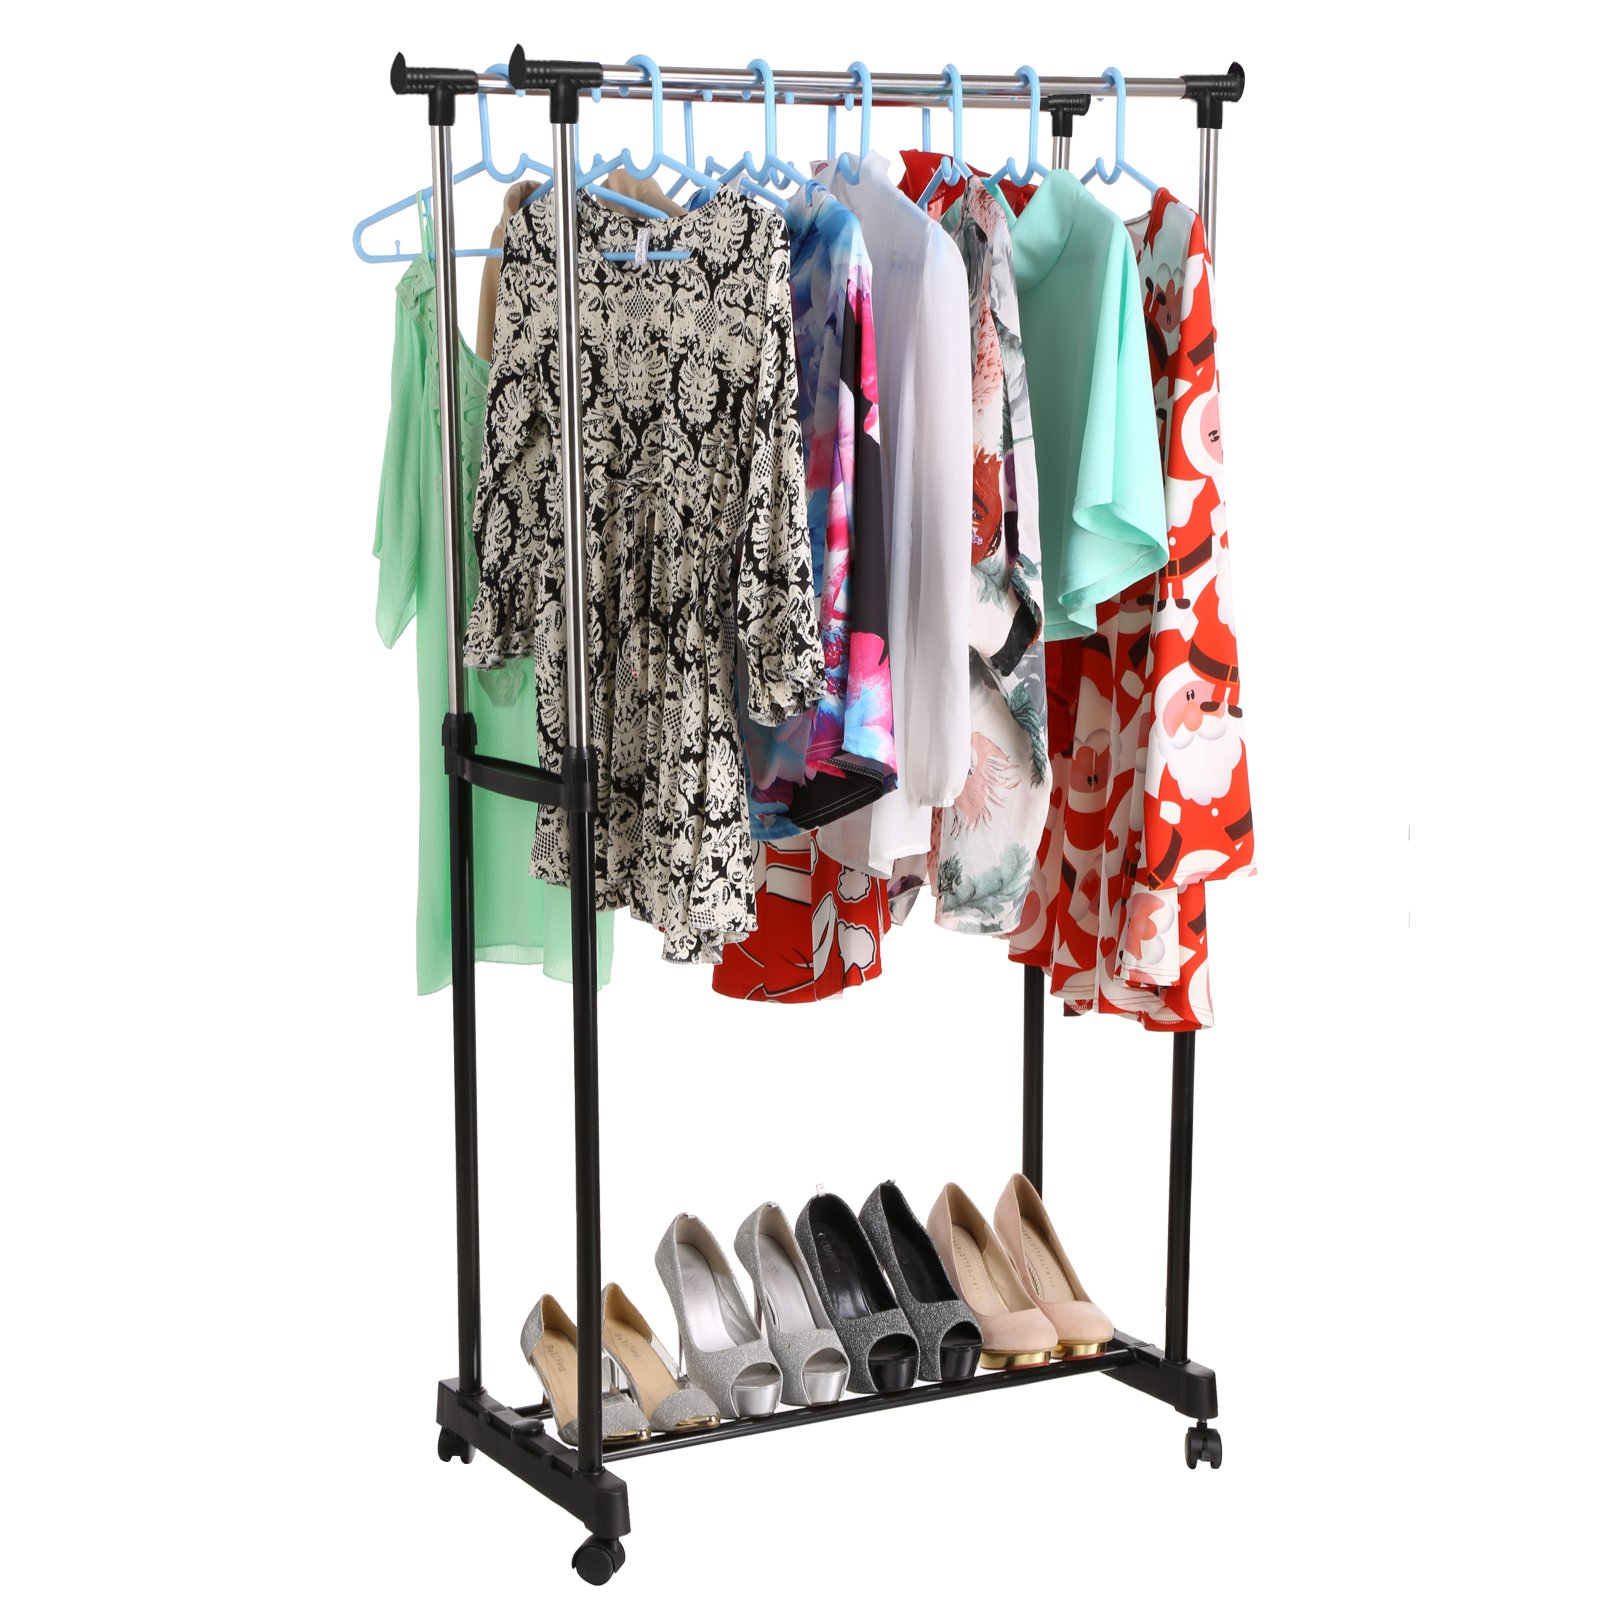 Homdox Clothes Drying Rack, Heavy Duty Double Pole Rail Rod Adjustable Garment Rack Clothing Rack Outdoor Indoor Clothes Rack Hanger, with 4 360 degree wheels(2 with lock)